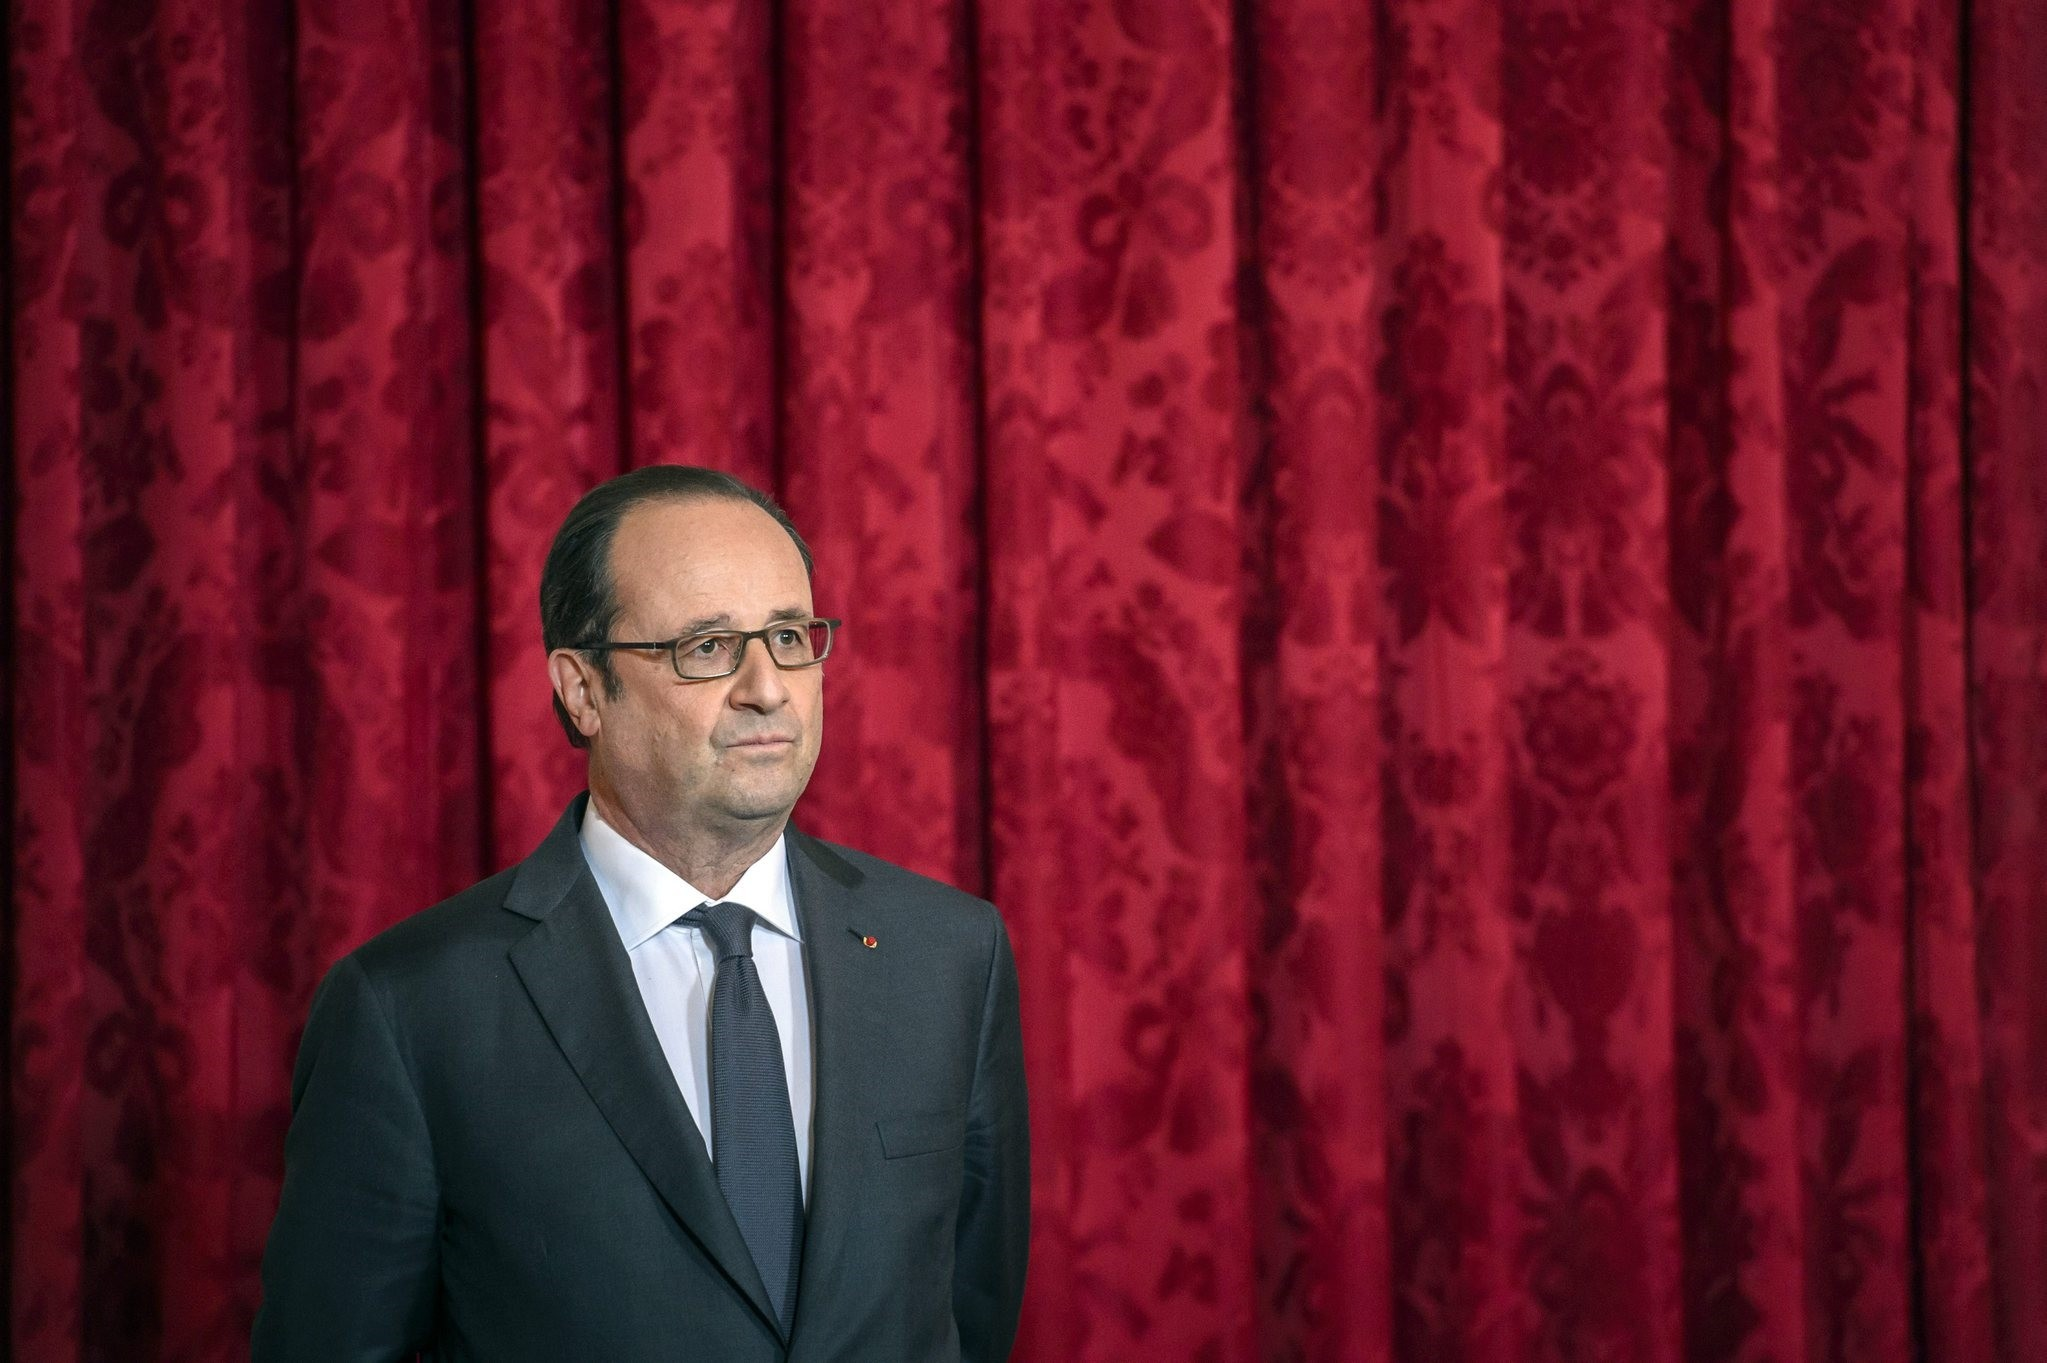 French President Francois Hollande at the Elysee Presidential Palace in Paris, France, 16 January 2017. (EPA Photo)